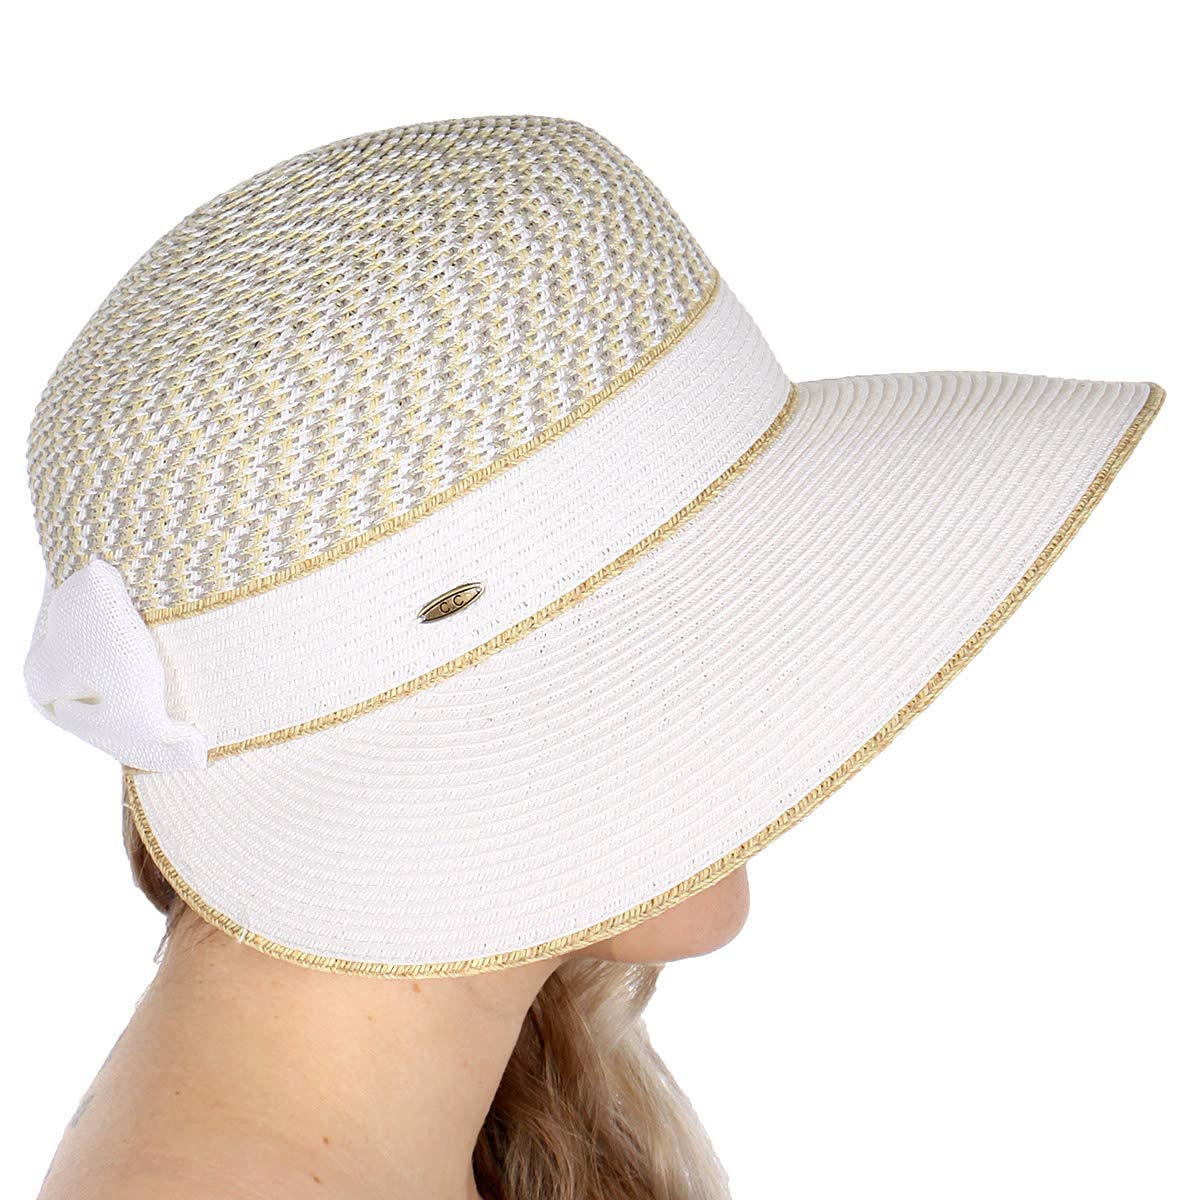 Wide Brim Straw Beach Sun Hats for Women with Bow Foldable Floppy Panama for Sun Protection